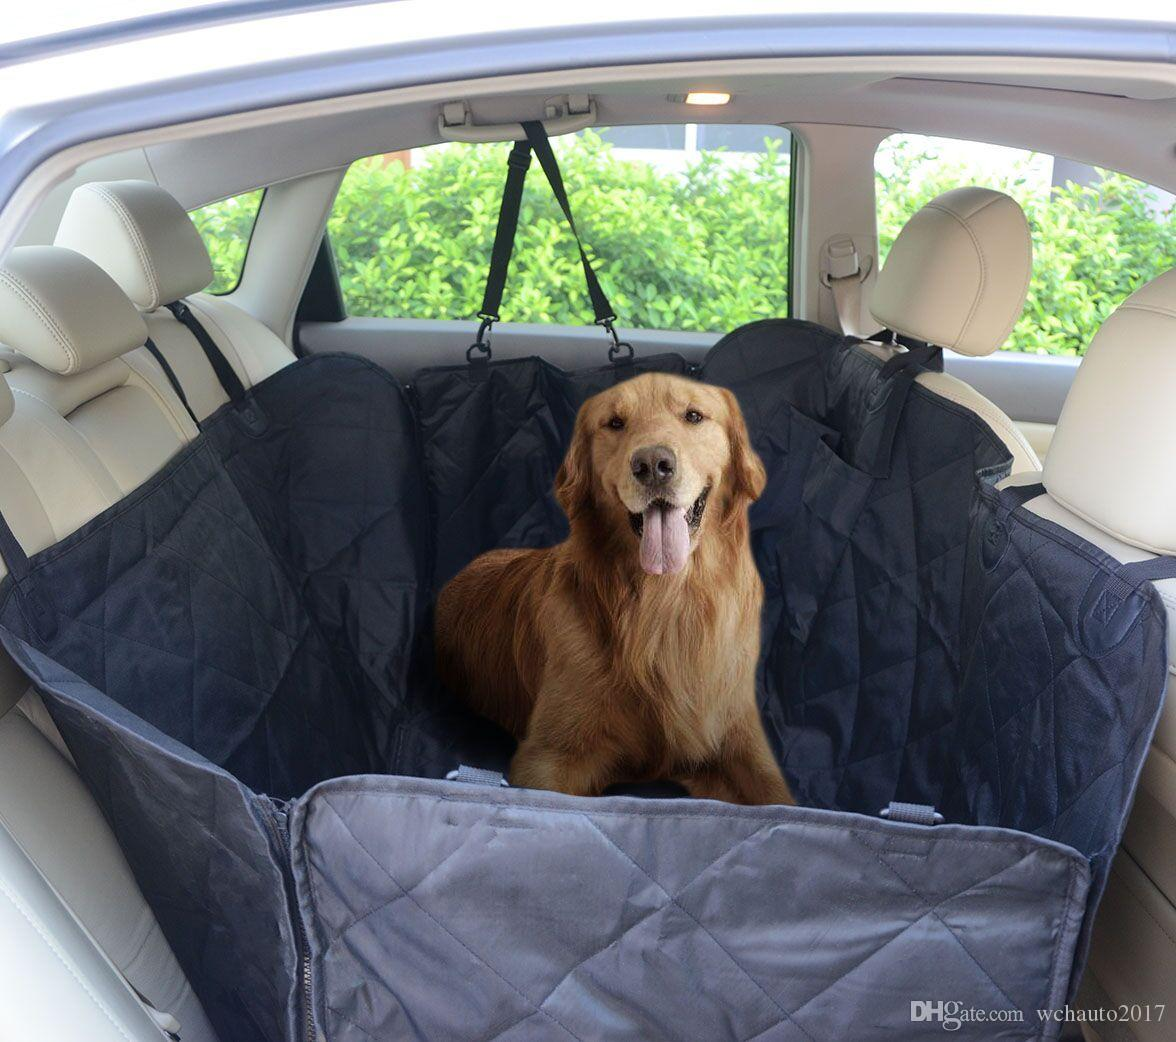 Pet Seat Cover For Large Dogs Breeds Waterproof Nonslip Scratch Proof Rear Back Car Covers Hammock Trucks SUVs Vans Black